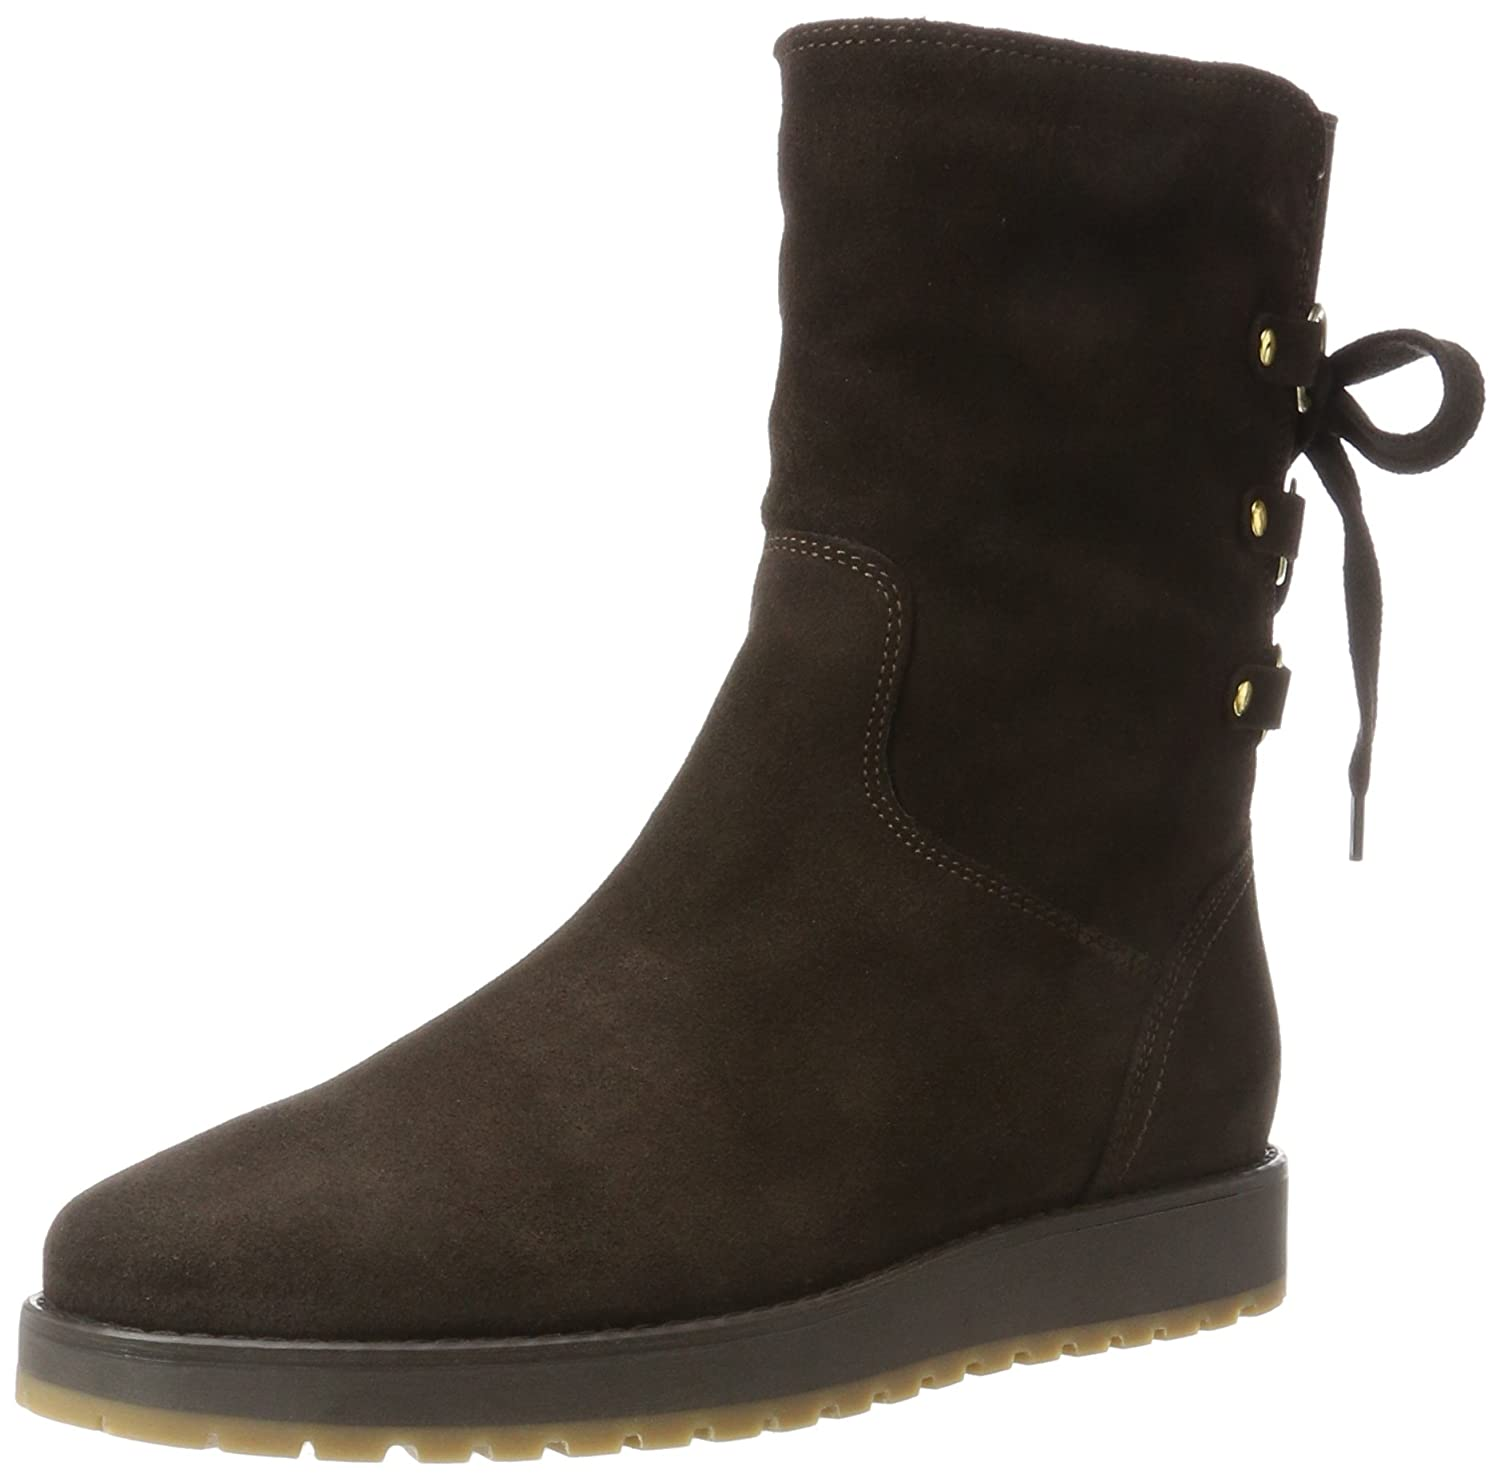 a6700bb09c7bf6 Tommy Hilfiger Women's R1285ita 4b Ankle Riding Boots: Amazon.co.uk ...